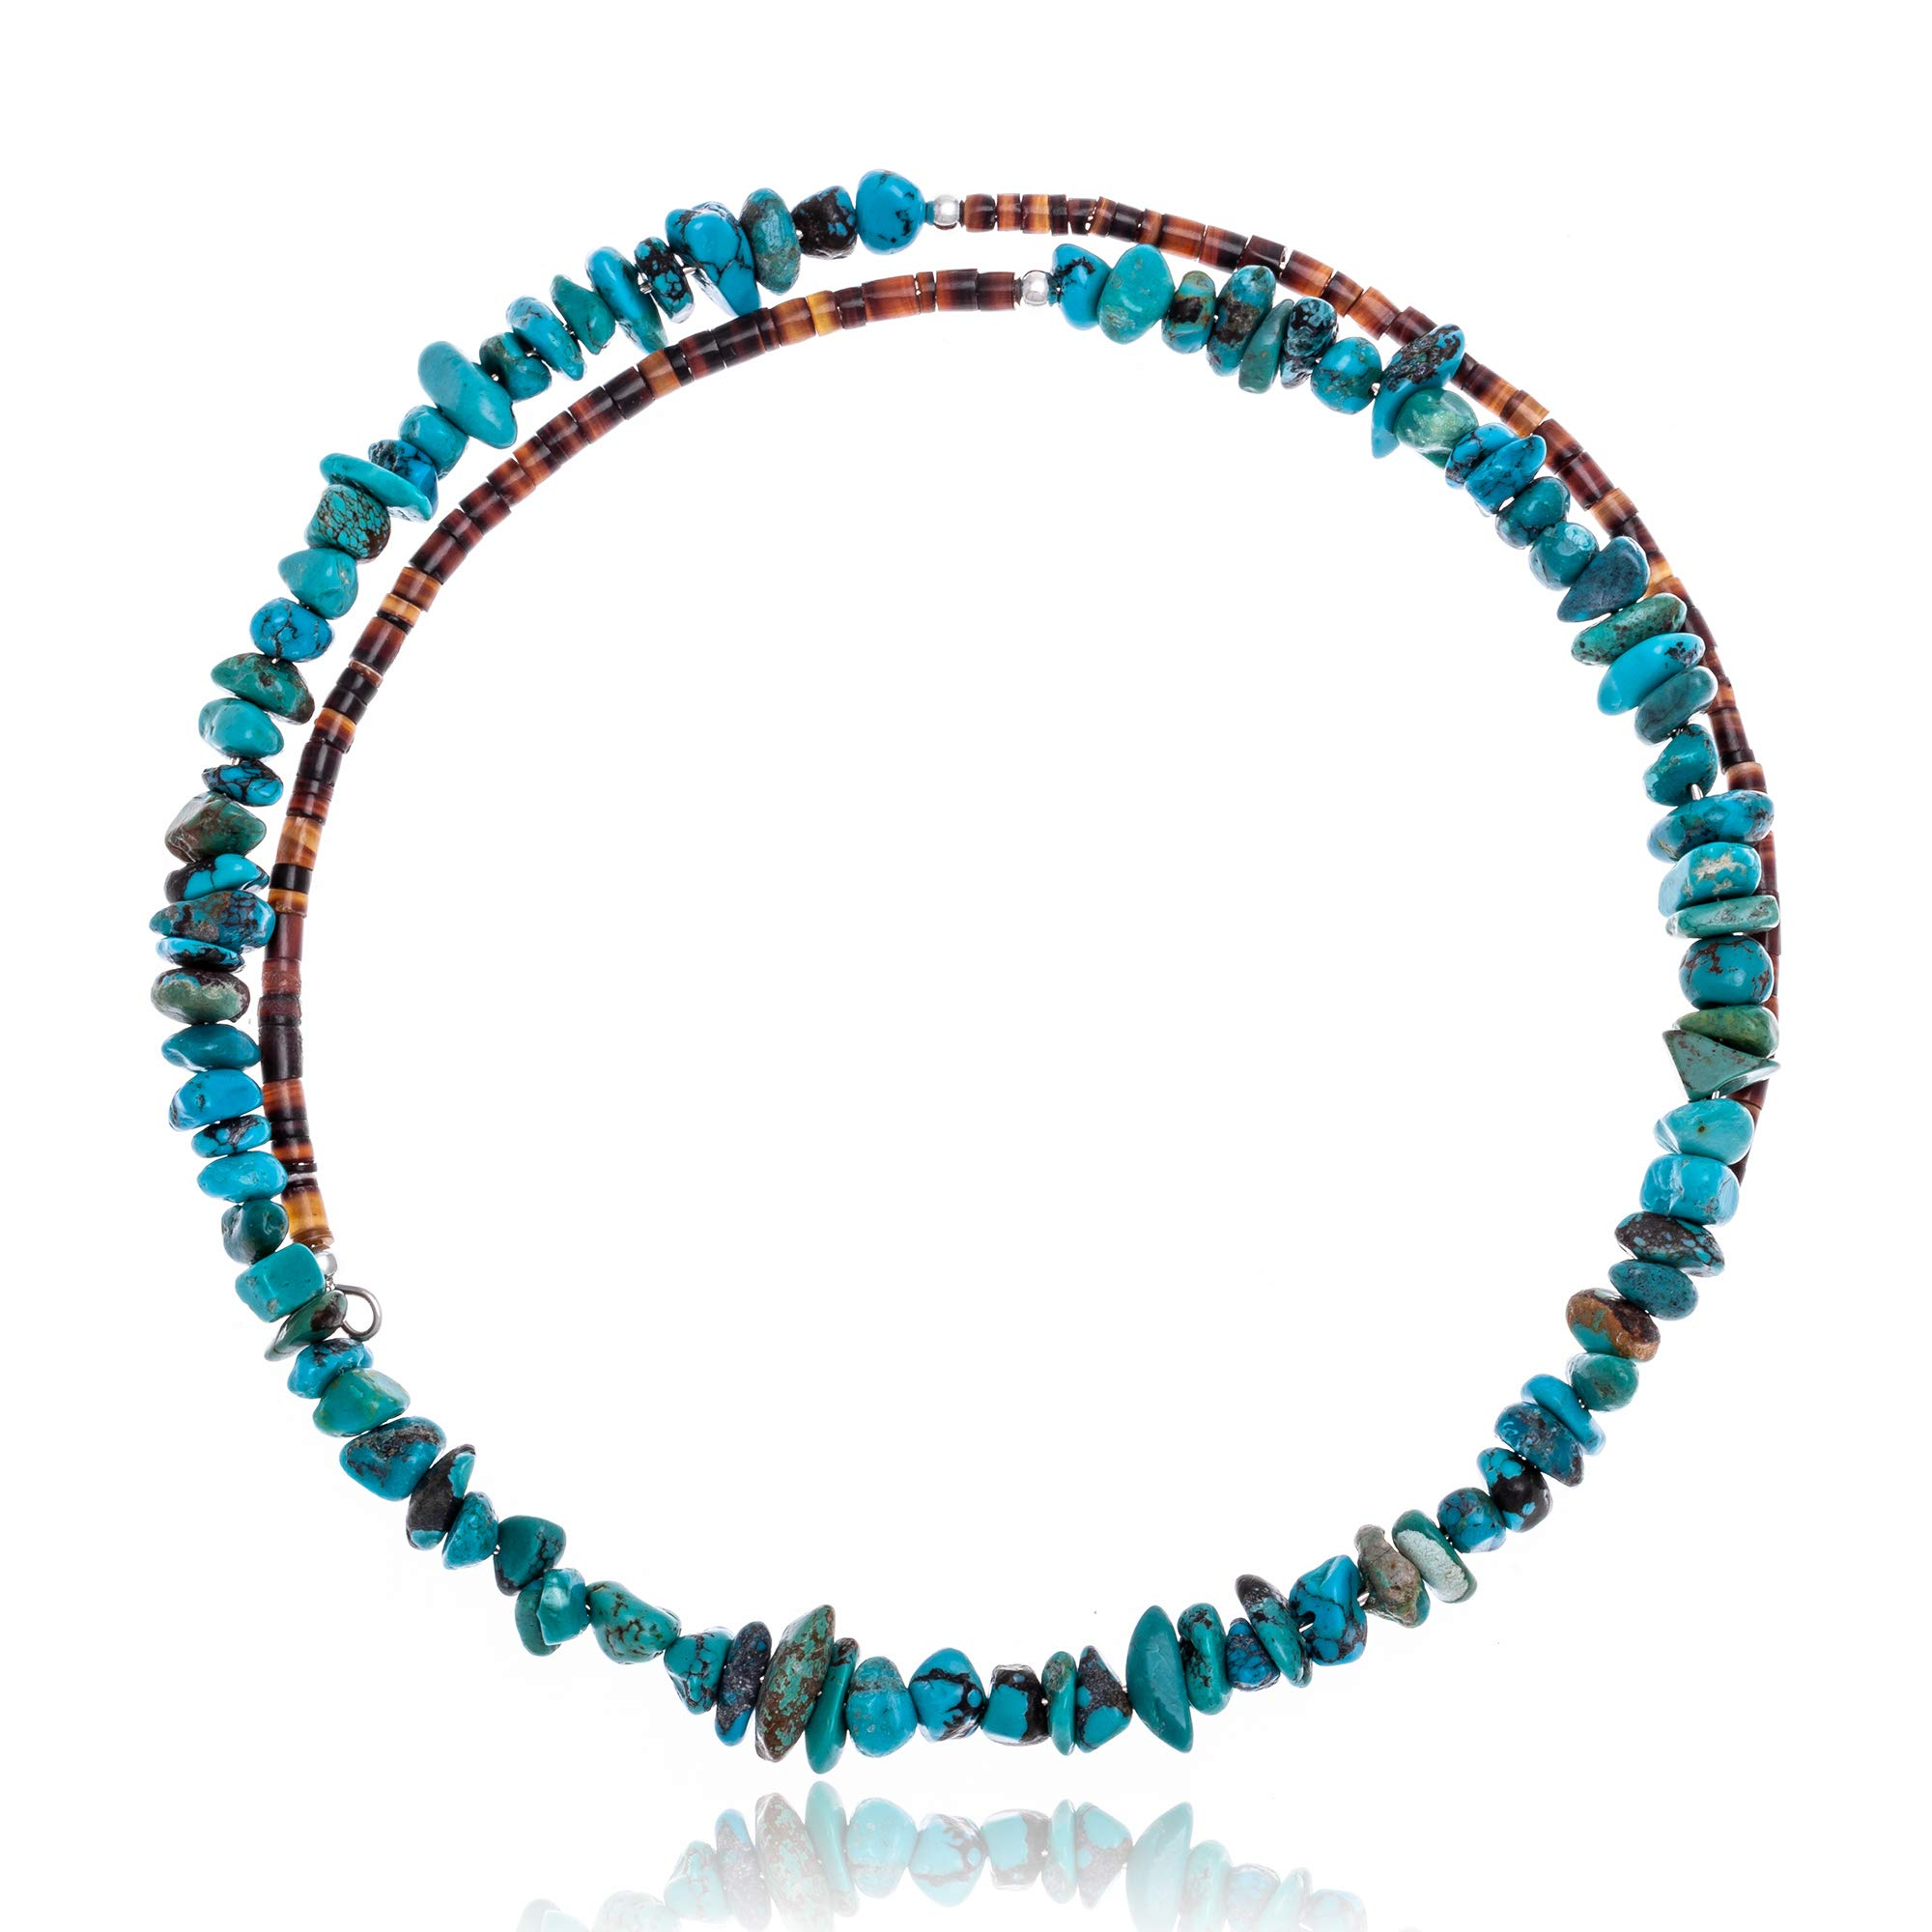 Native-Bay $100Tag Genuine Stones Certified Navajo Adjustable Choker Wrap Necklace Chain 255555 Made by Loma Siiva